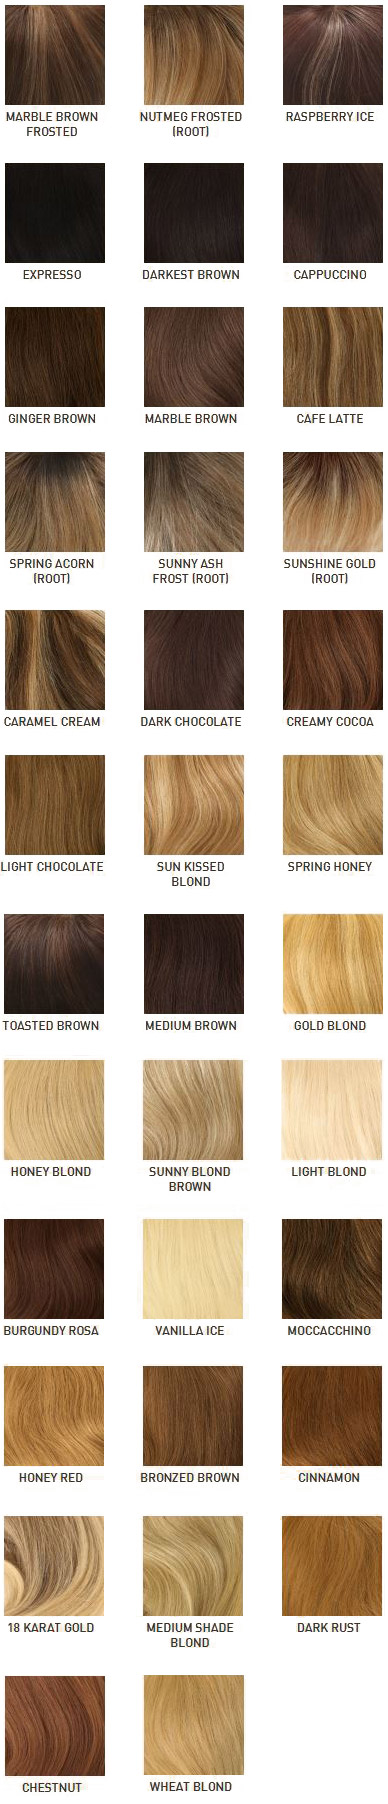 Louis Ferre Hair Color Chart - Synthetic & Human Hair Sample Color